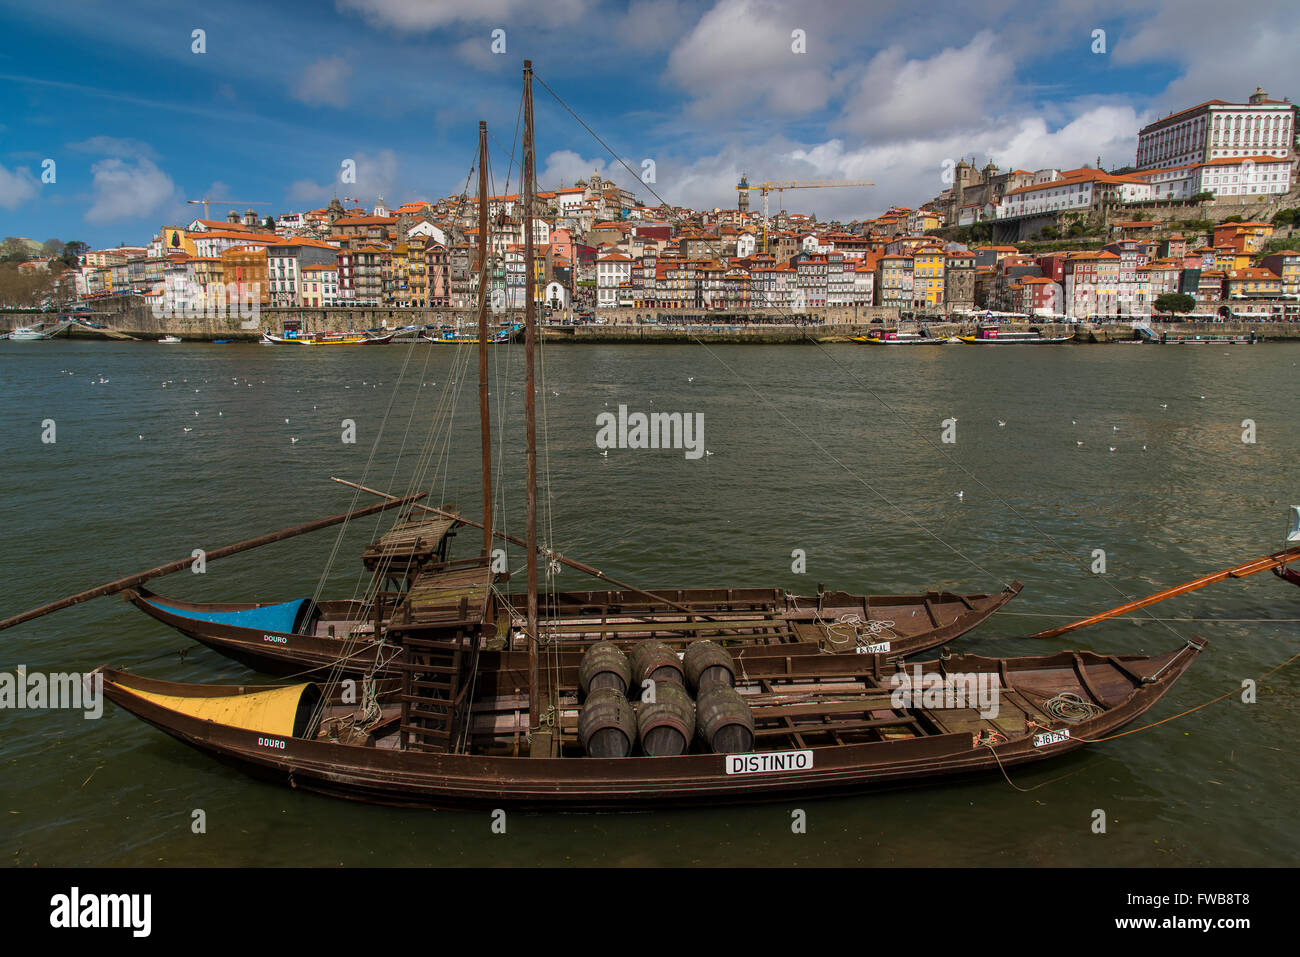 Traditional Rabelo boat designed to carry wine down Douro river with city skyline behind, Porto, Portugal - Stock Image